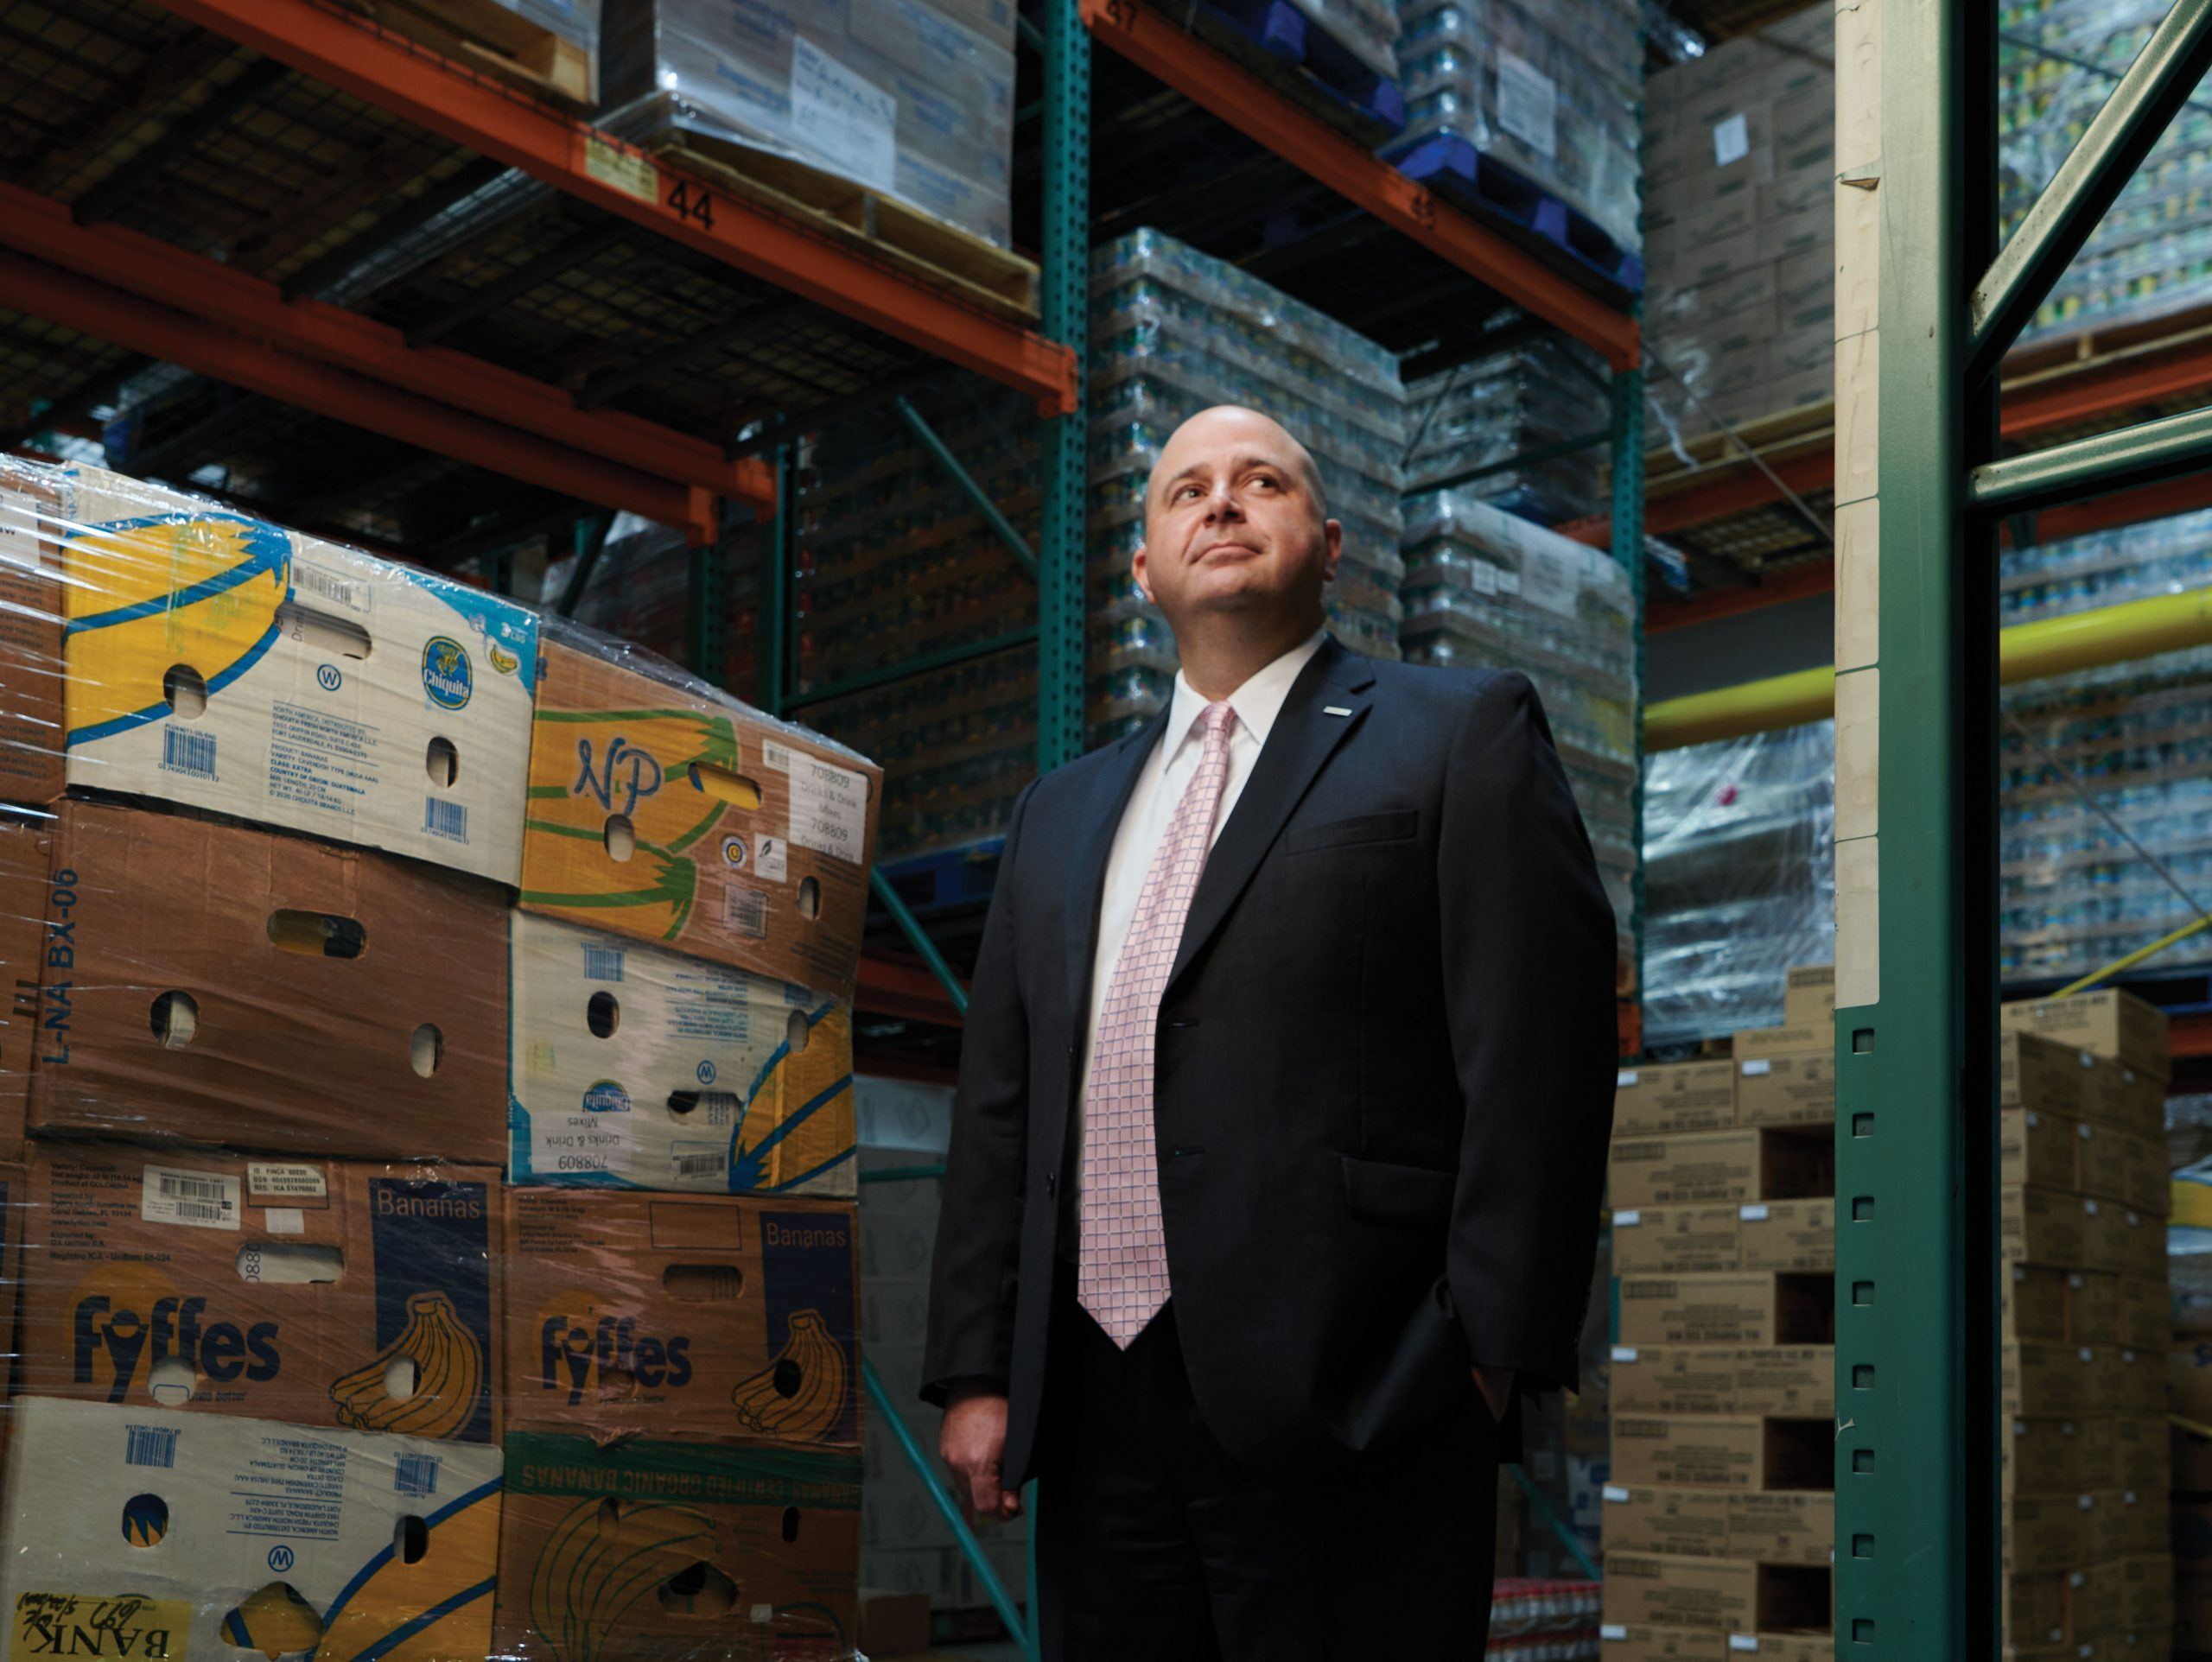 Man standing in food warehouse